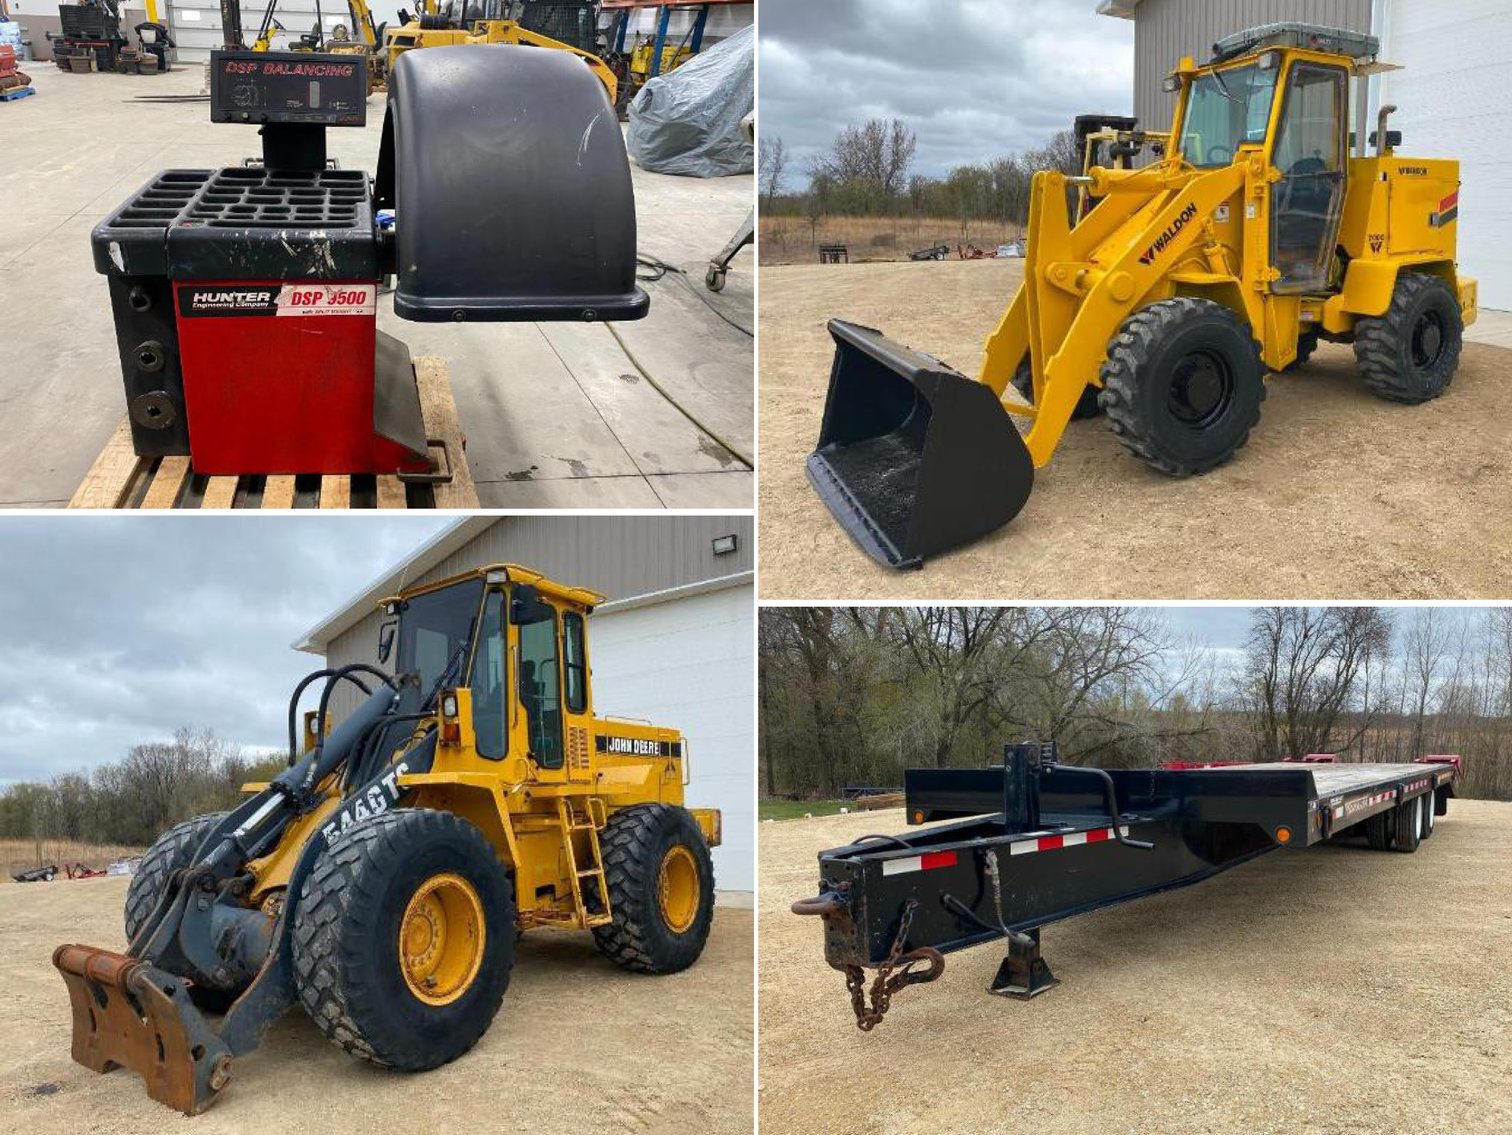 Payloaders, Forklifts, Manlifts, Trailers, Trucks, Cars, Tools & Equipment